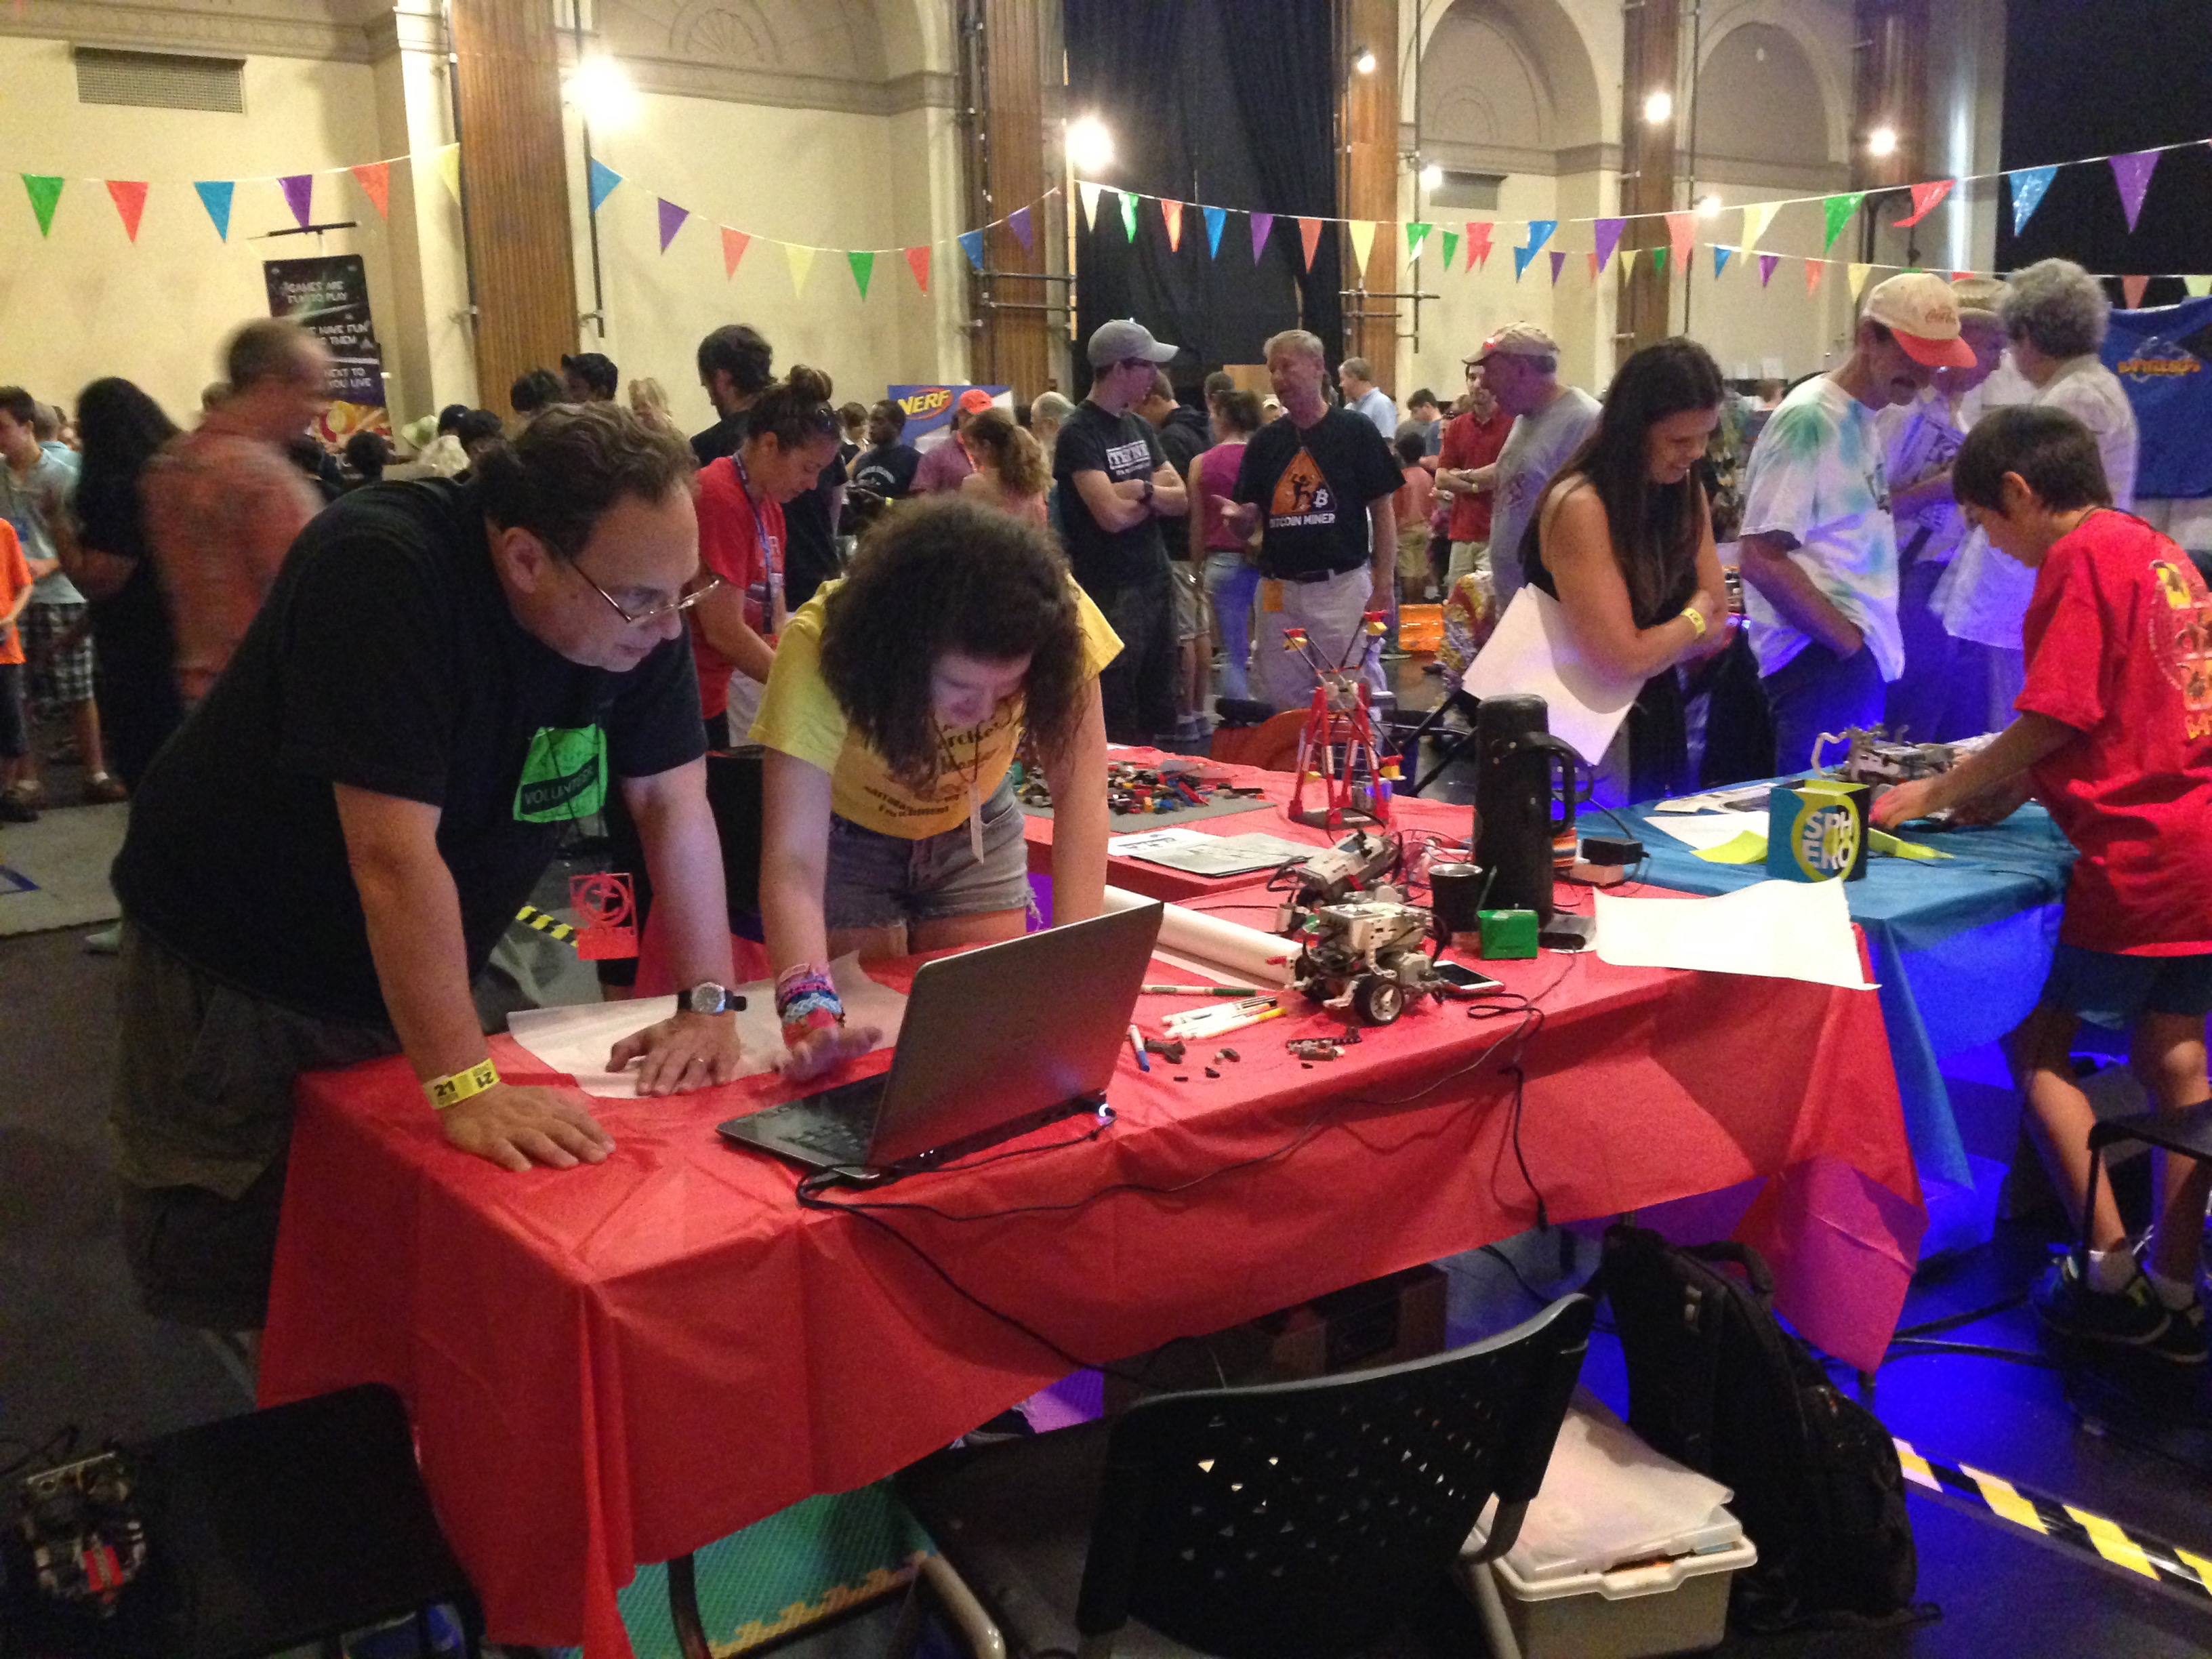 From the US Industrial Revolution to a Mini Maker Faire